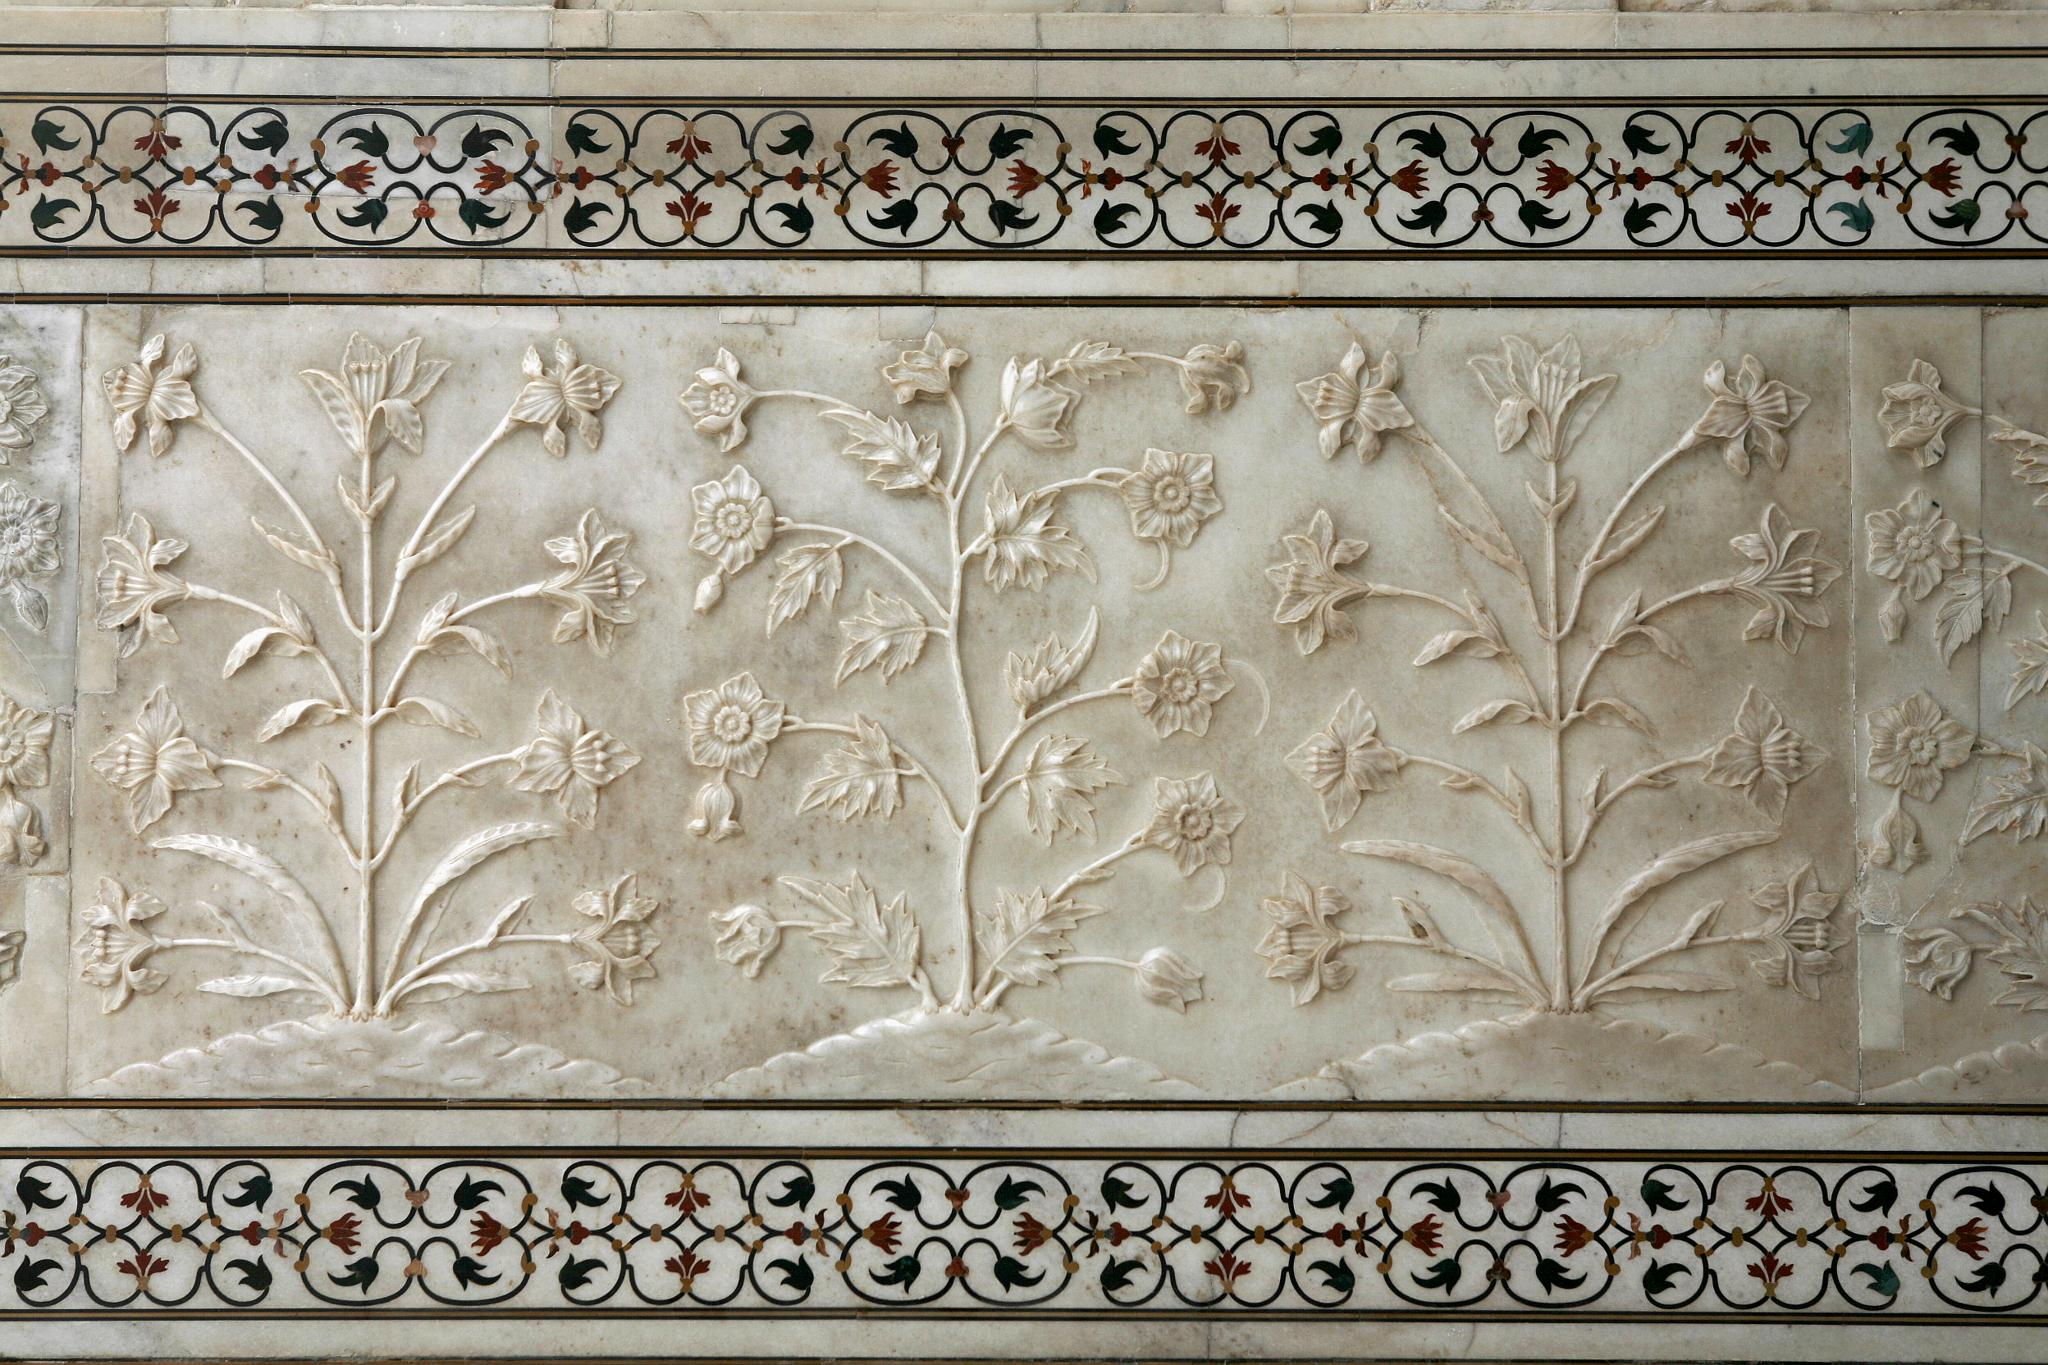 Delicate floral carving in marble and studded with precious gems at the UNESCO world heritage site, the Taj Mahal in Agra, India.